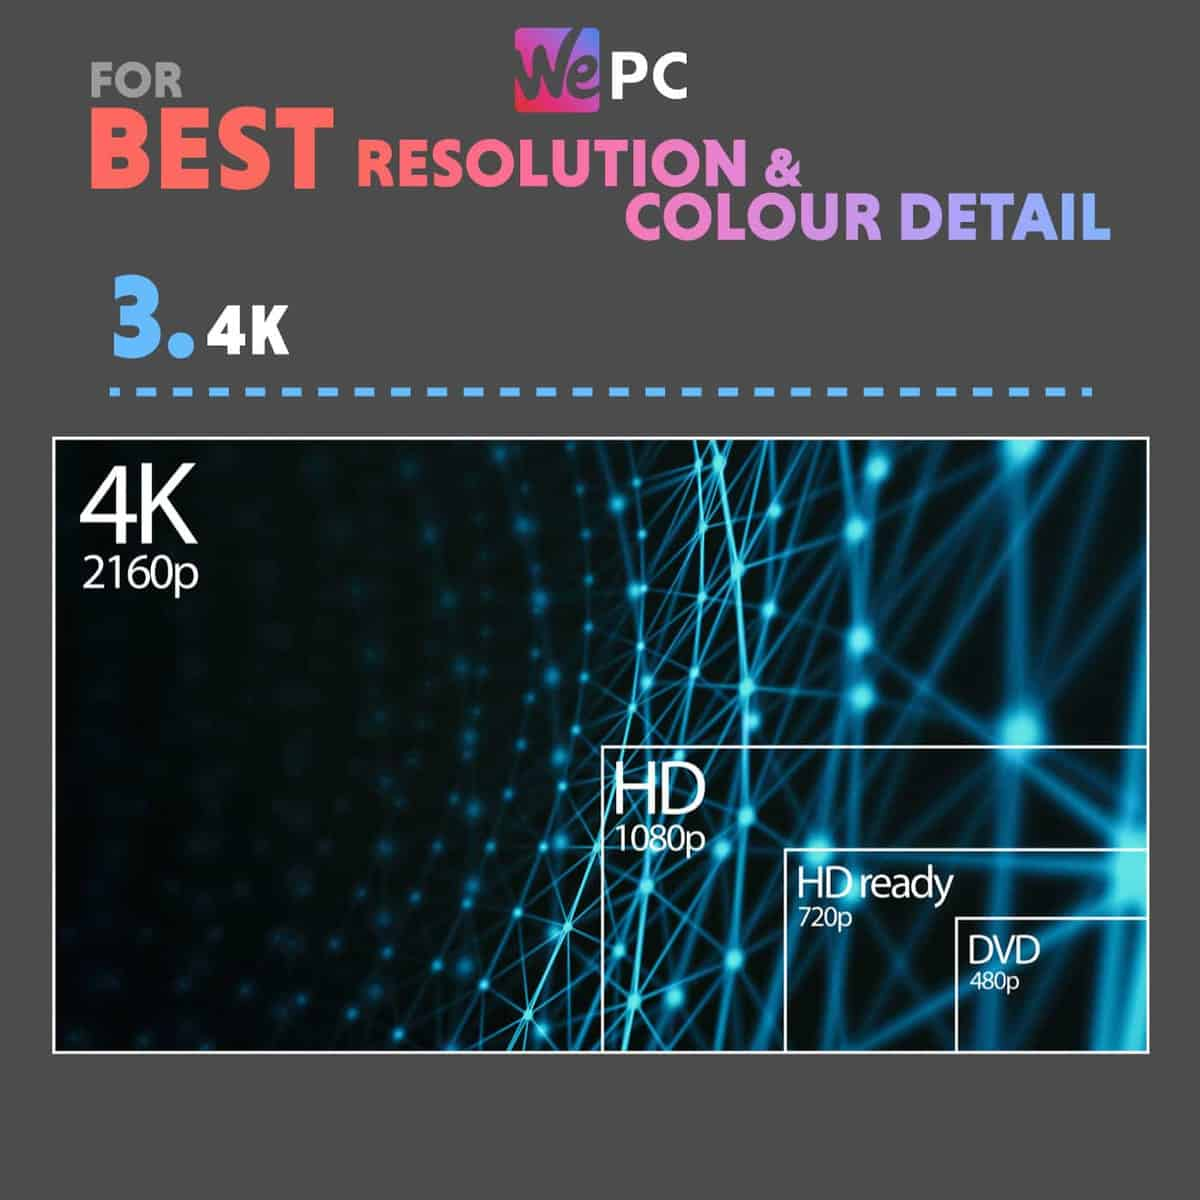 Monitor Key Features for Best Resolution and Color Detail 4K